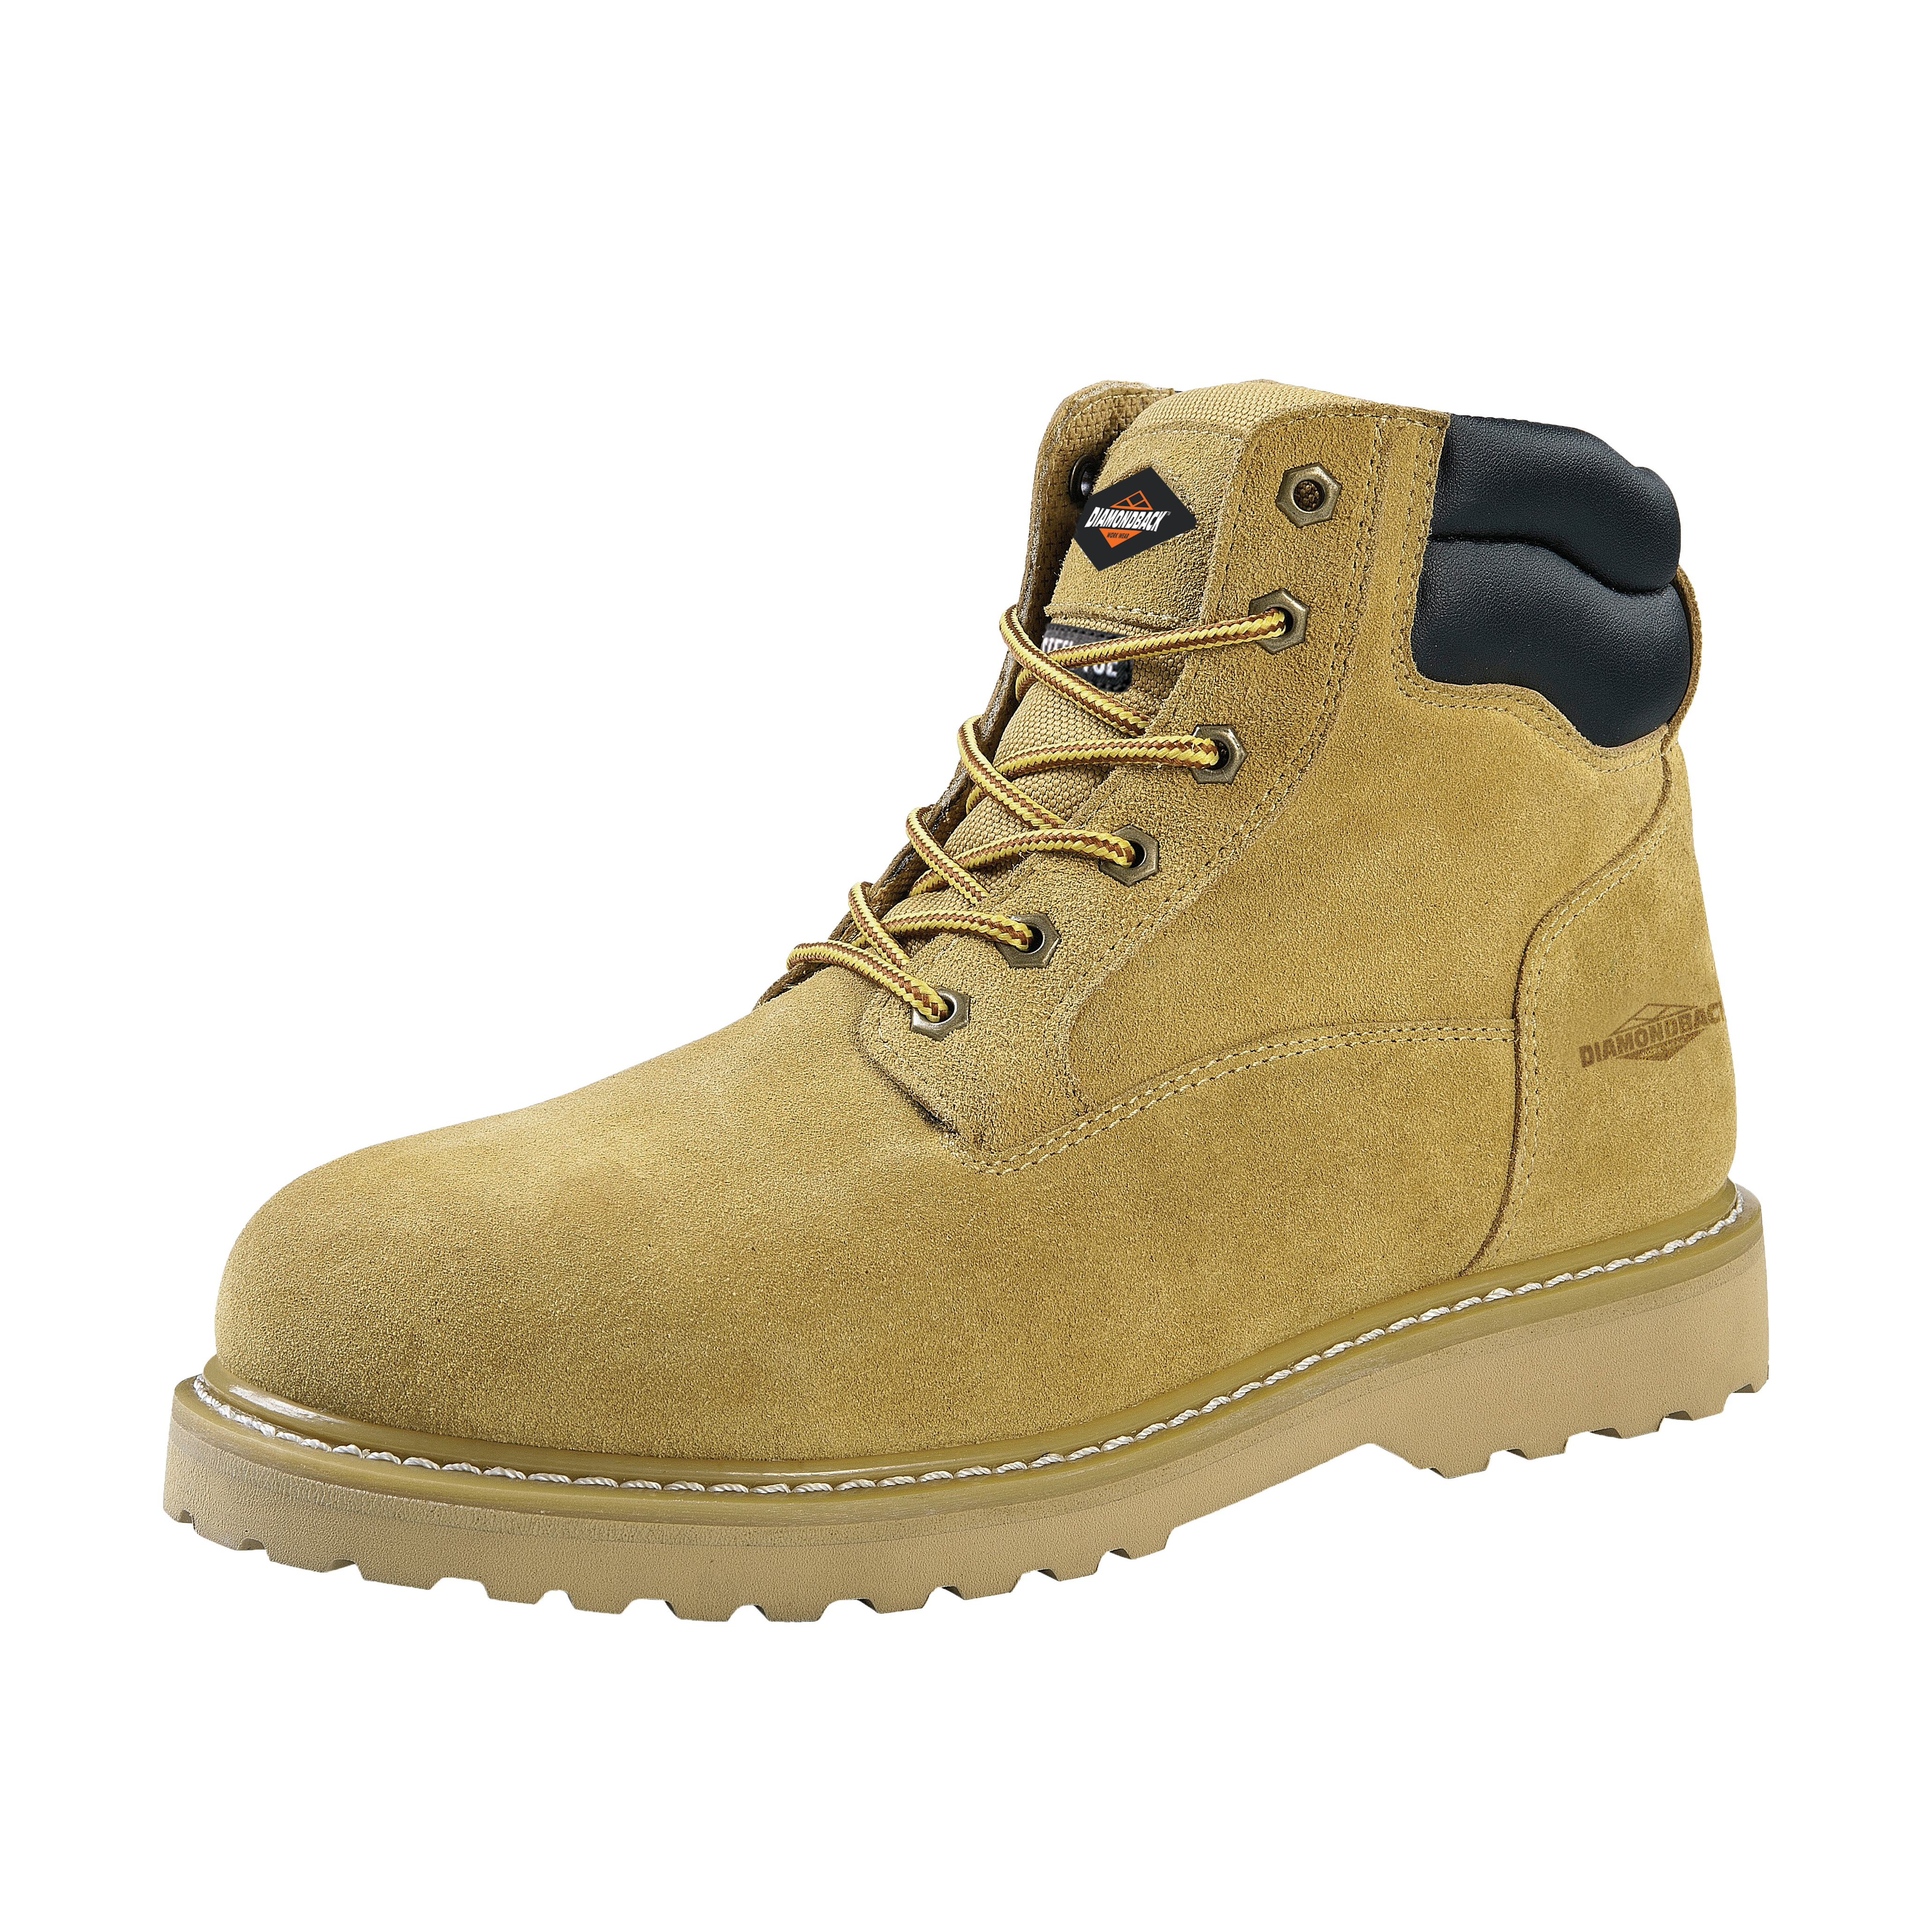 Picture of Diamondback 1-10.5 Work Boots, 10.5, Beige, Leather Upper